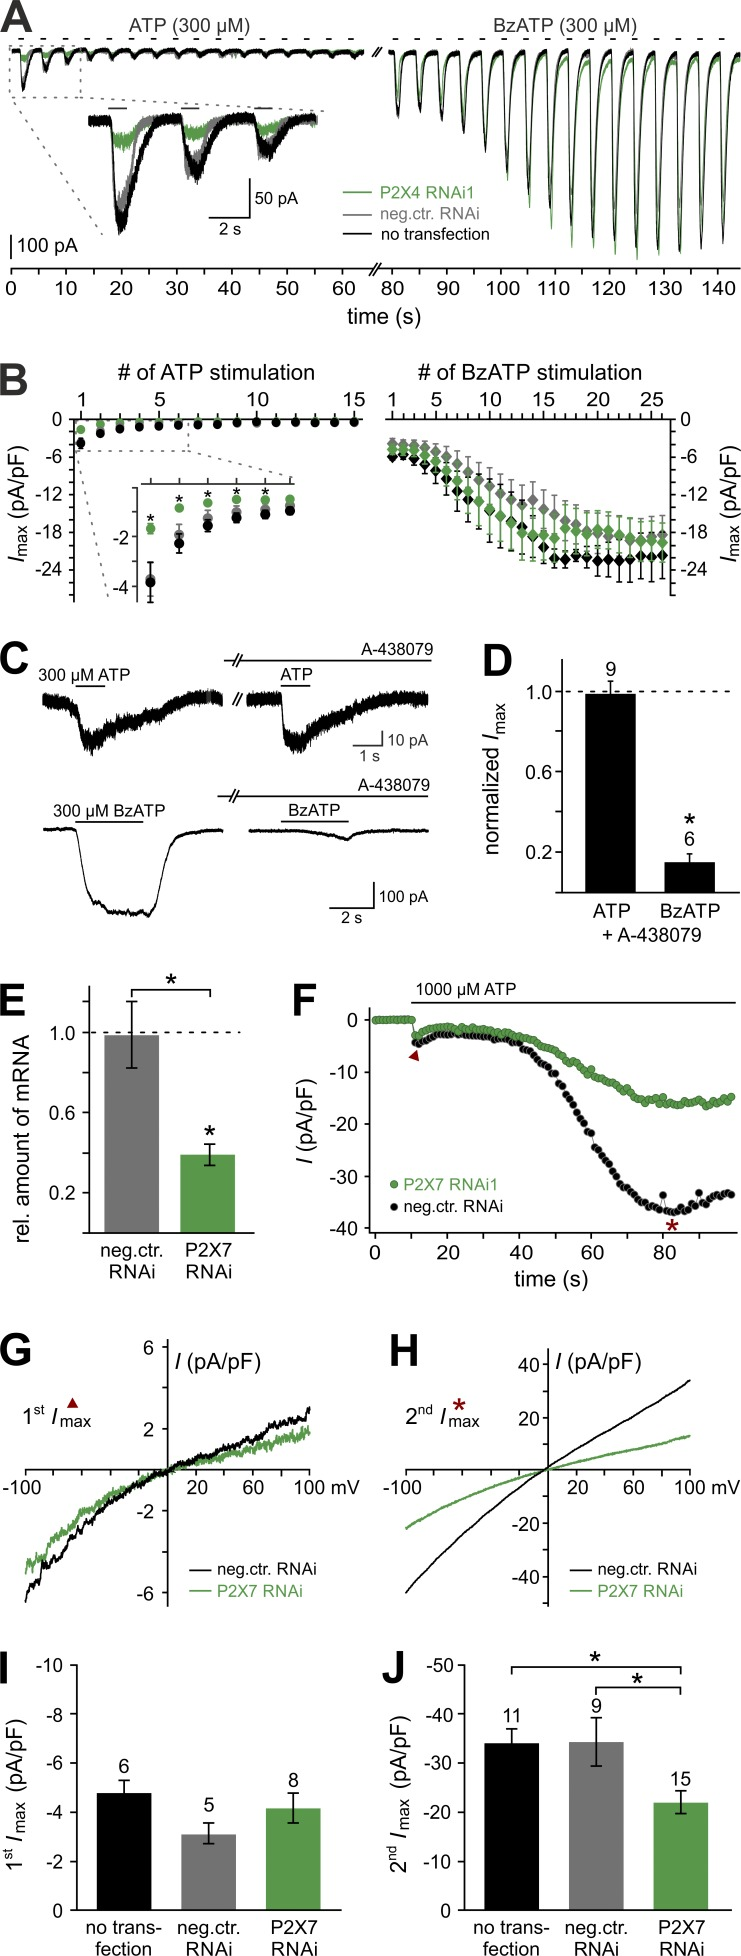 P2X7 constitutes the low-affinity spermatogonial ATP sensor. (A) Exemplary whole-cell voltage-clamp recordings of currents triggered by repetitive stimulation (1 s; ISI = 3 s; S 1 , S 6 ) with ATP (300 µM; left) or BzATP (300 µM; right), respectively. Traces from untransfected spermatogonia (black) and cells transfected with either nontarget negative control siRNA (gray) or a construct targeting <t>P2X4</t> (green) are overlaid. (B) Quantification of results from repetitive stimulation experiments as shown in A. Peak current densities (means ± SEM) are color coded and plotted as a function of stimulus repetition. Cells were analyzed under control conditions ( n = 33/13 [ATP/BzATP]; black), after transfection with nontargeting siRNA ( n = 16/23 [ATP/BzATP]; gray), and after P2X4 knockdown ( n = 16/23 [ATP/BzATP]; green). Inset (left) shows the data delimited by the dashed rectangle at an increased scale. Asterisks (*) indicate statistical significance, P